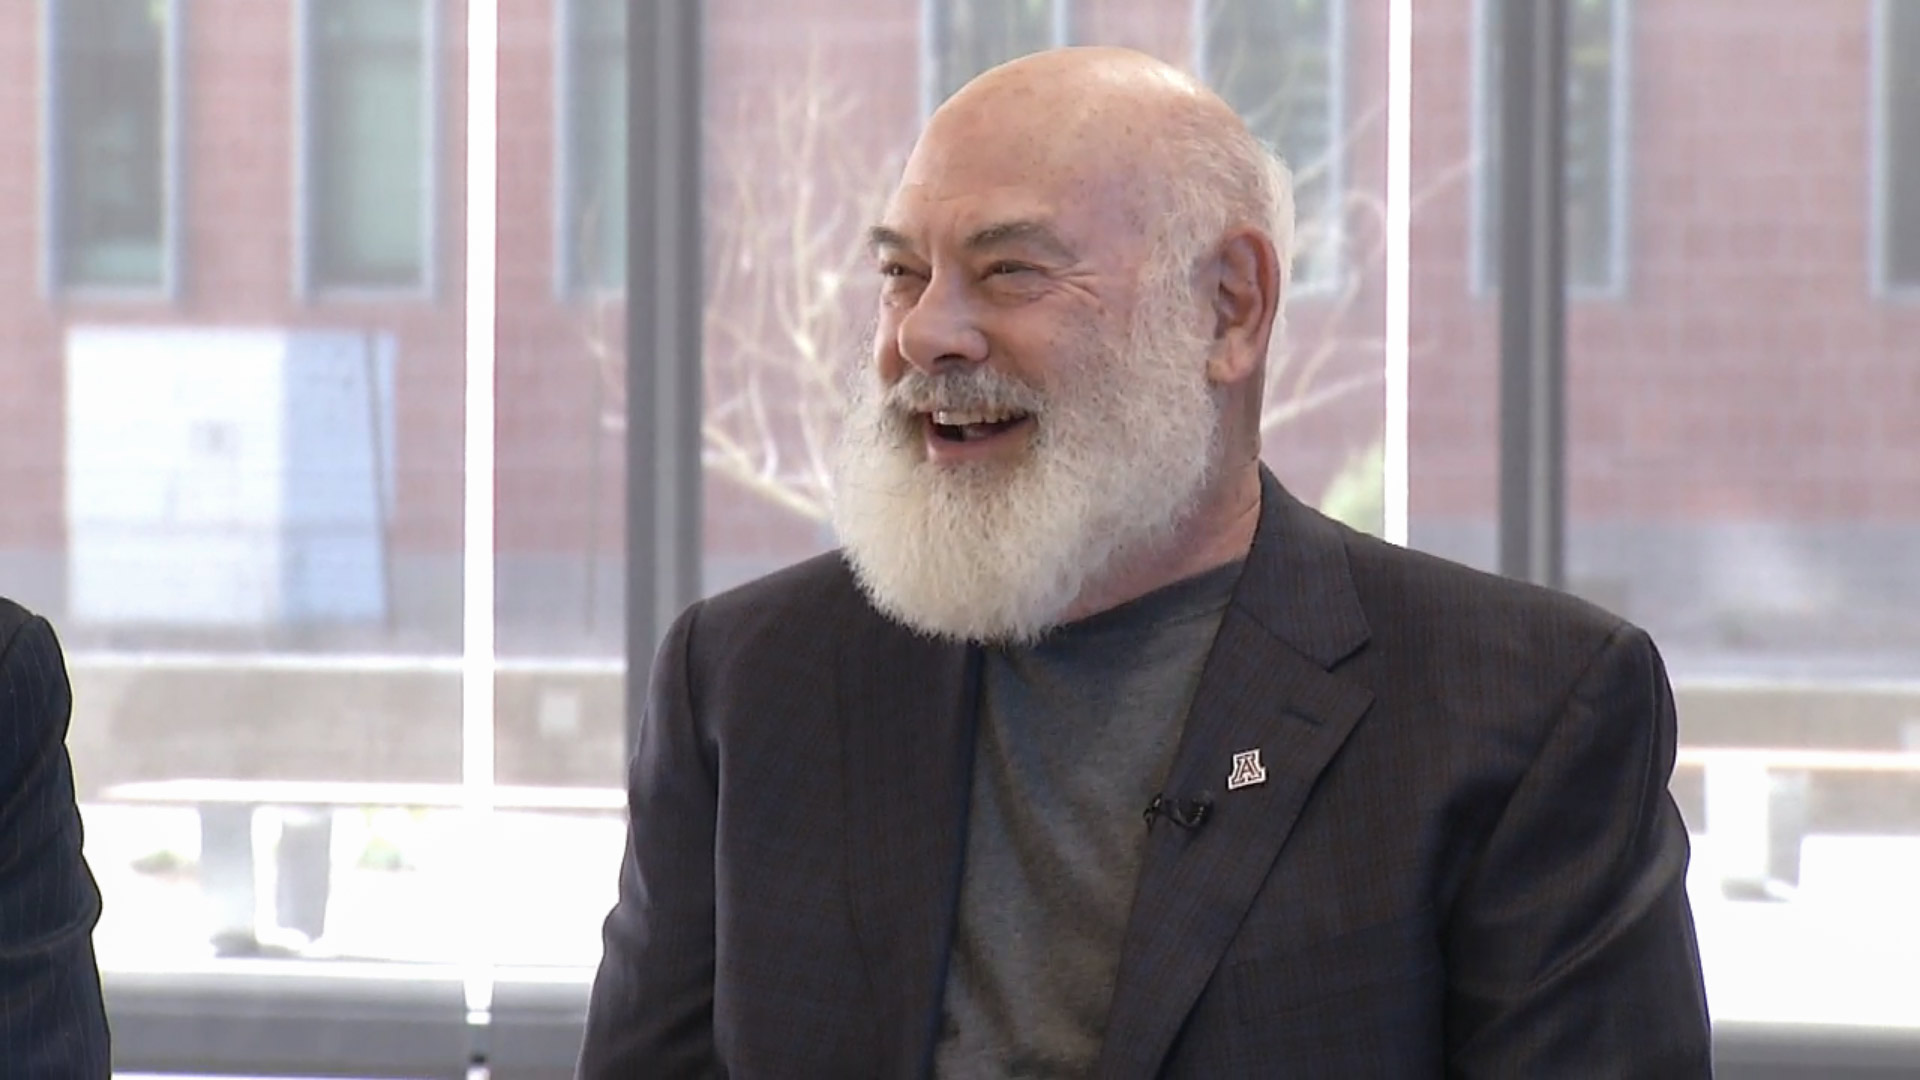 Dr. Andrew Weil press briefing